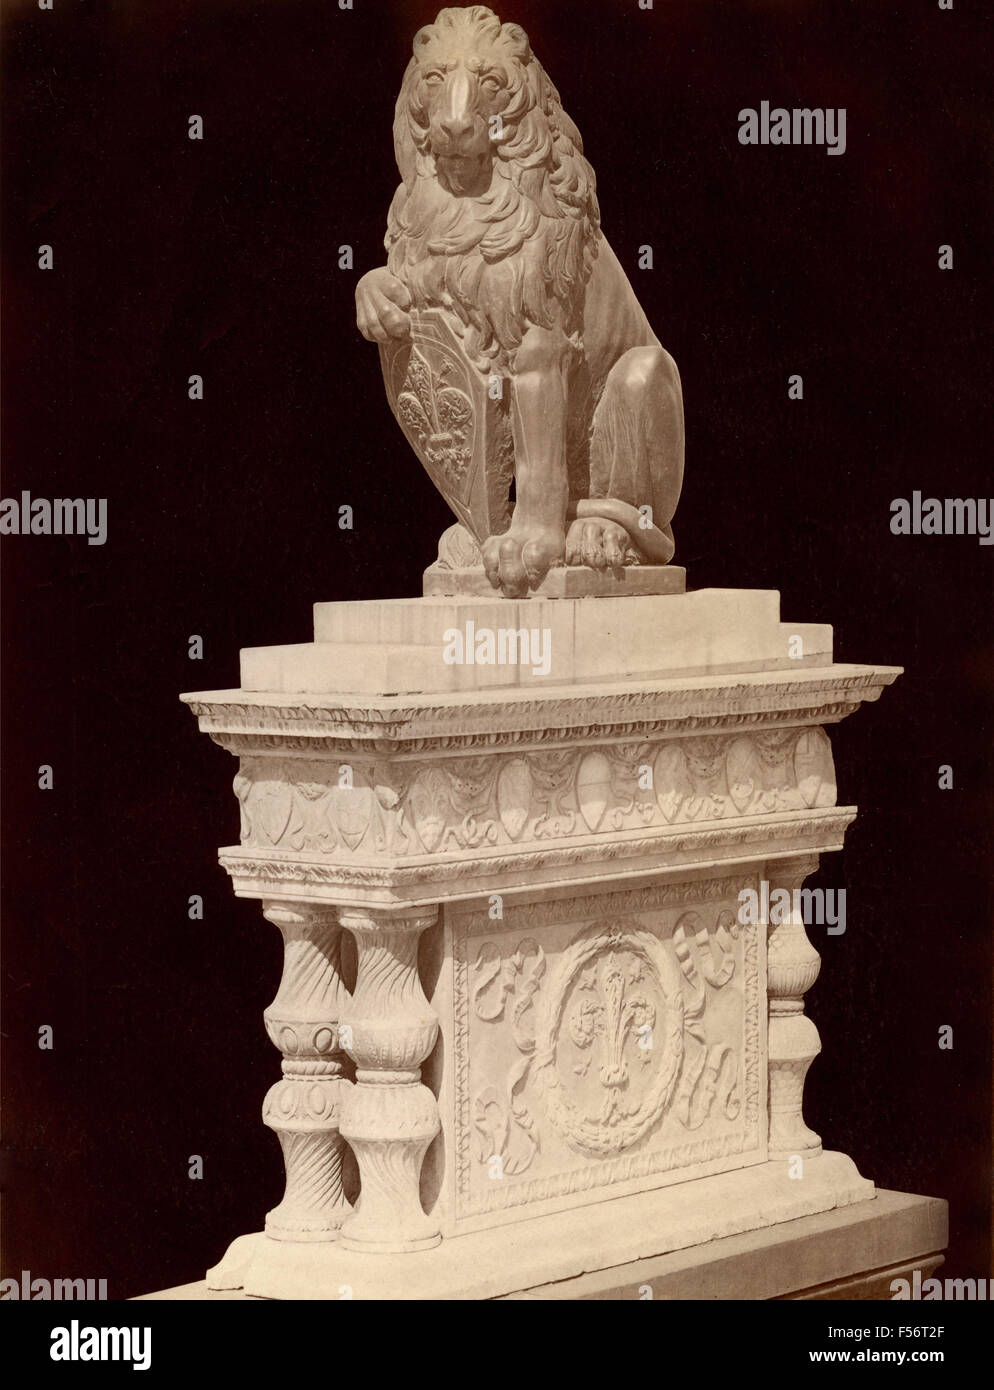 Leo said the Marzocco, reproduction of the original stone by Donatello, Florence, Italy - Stock Image